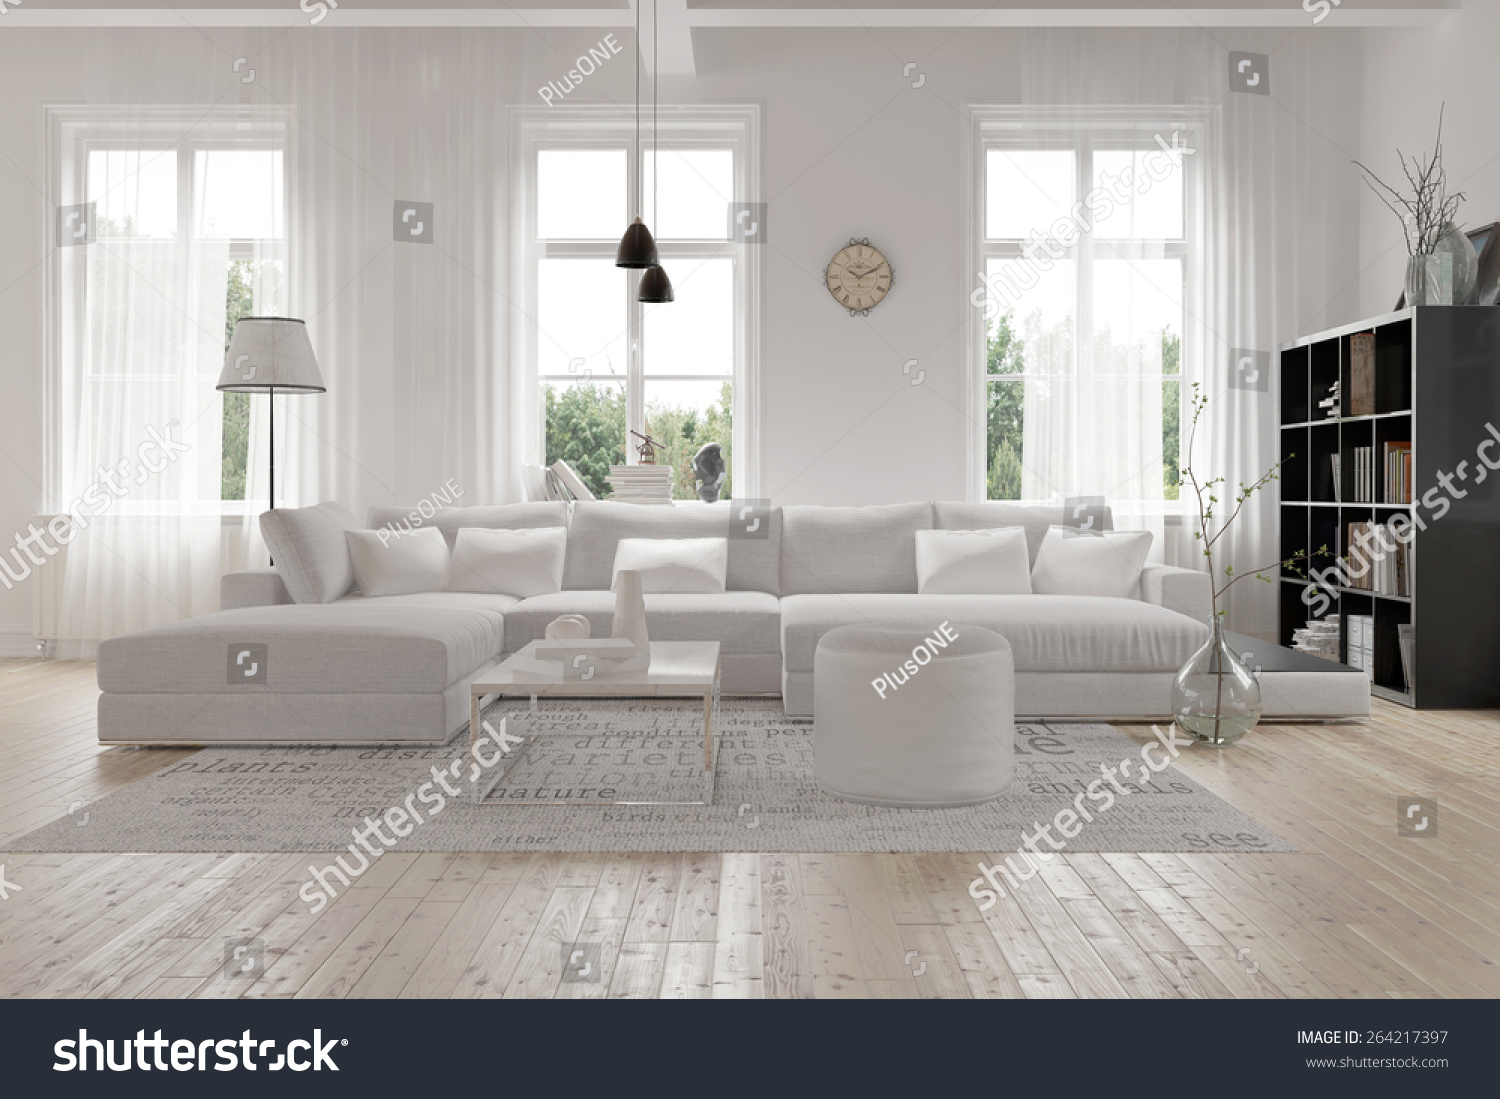 Living Room Living Room With White Furniture modern spacious lounge or living room interior with monochromatic save to a lightbox